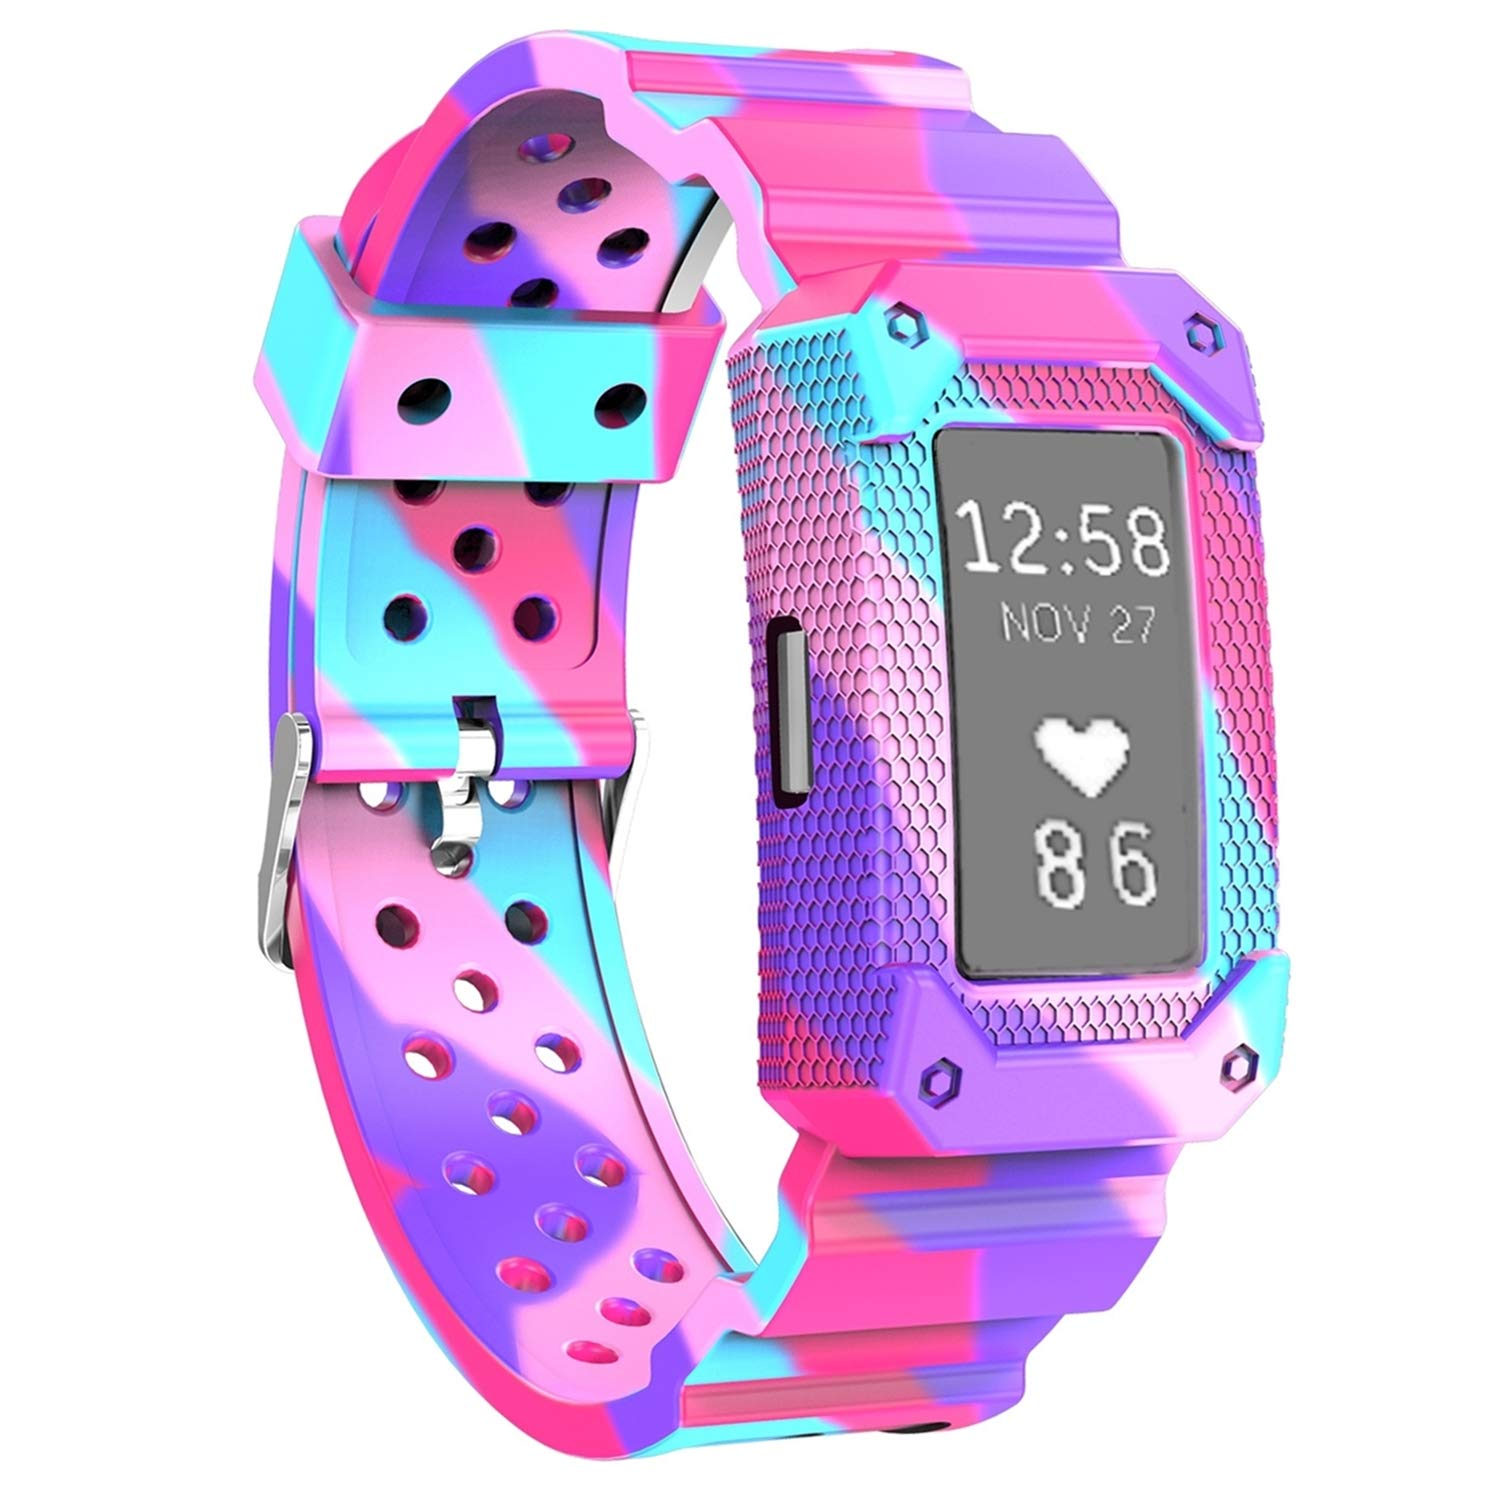 Moretek Watch Fitness Silicone Wristband Smart Replacement Band for Fitbit Charge 2 Tracker (Graffiti)